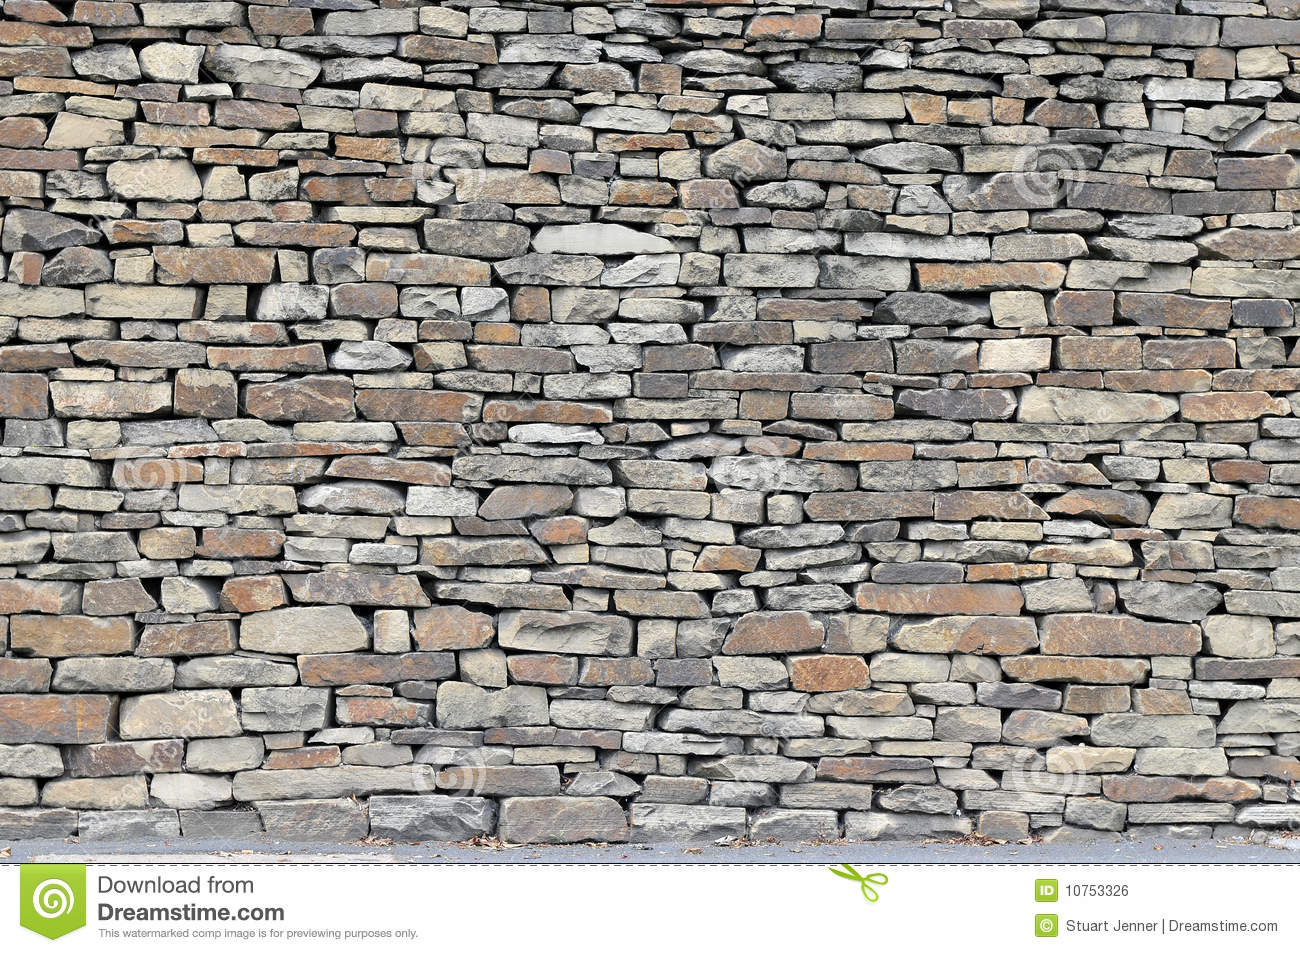 Rustic Stone Walls : Rustic dry stone wall stock photo image of stack